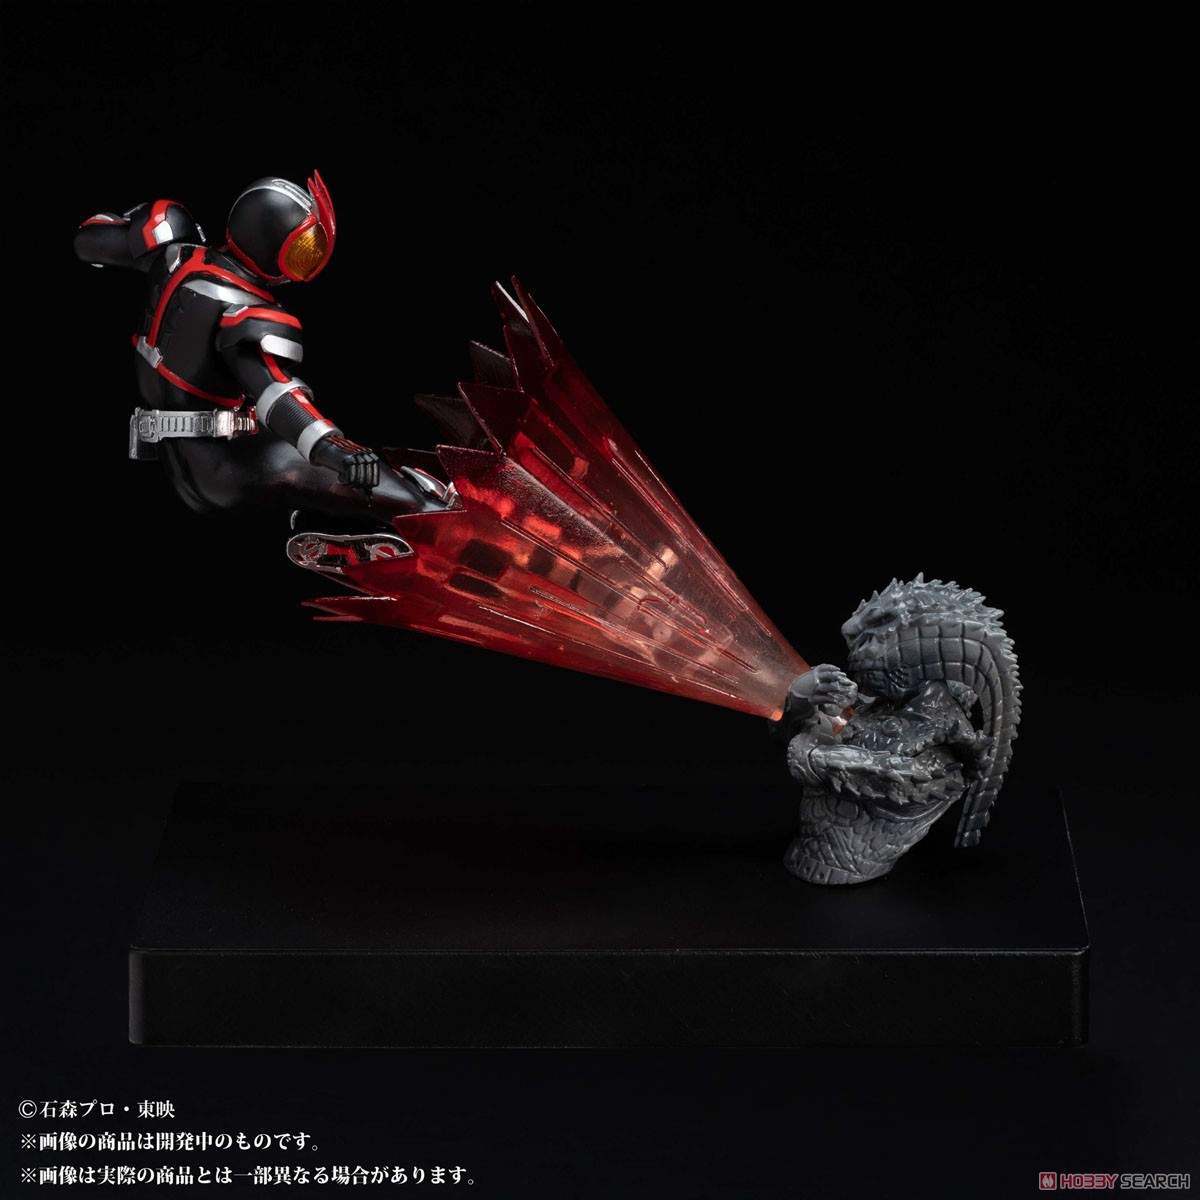 Glow In The Dark『仮面ライダーファイズ』仮面ライダー555 完成品フィギュア-008